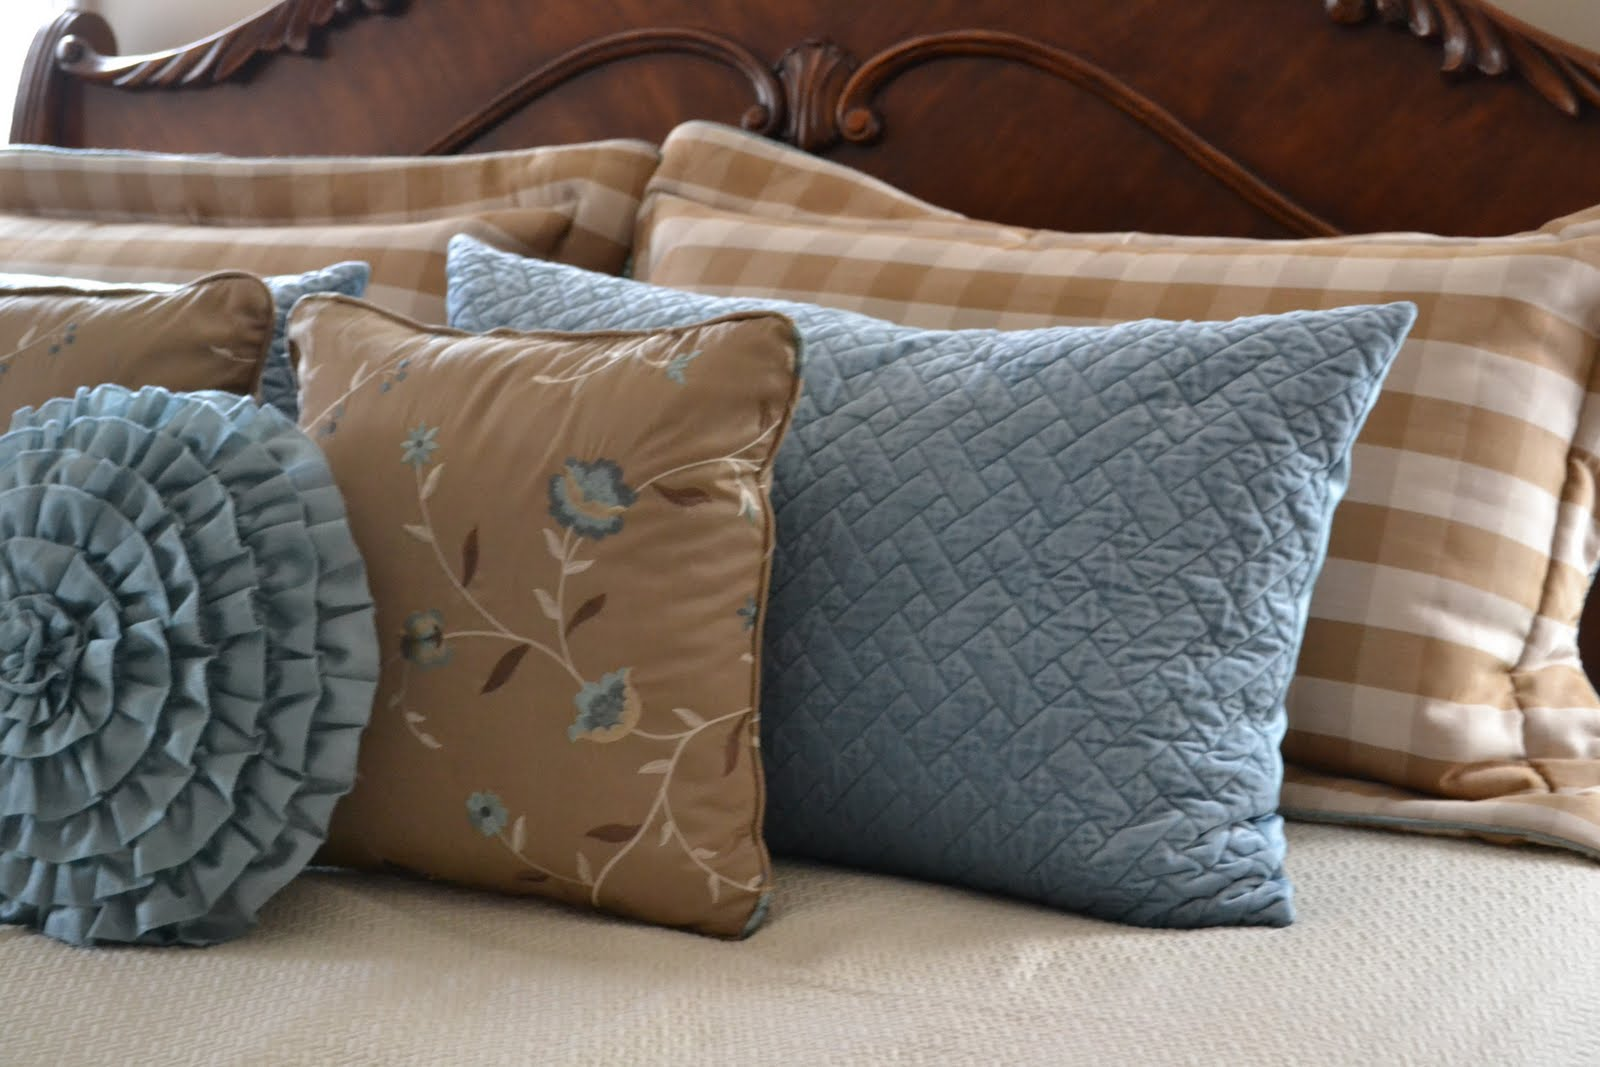 How to Make a Pillow Sham - Part 1 | Worthing Court